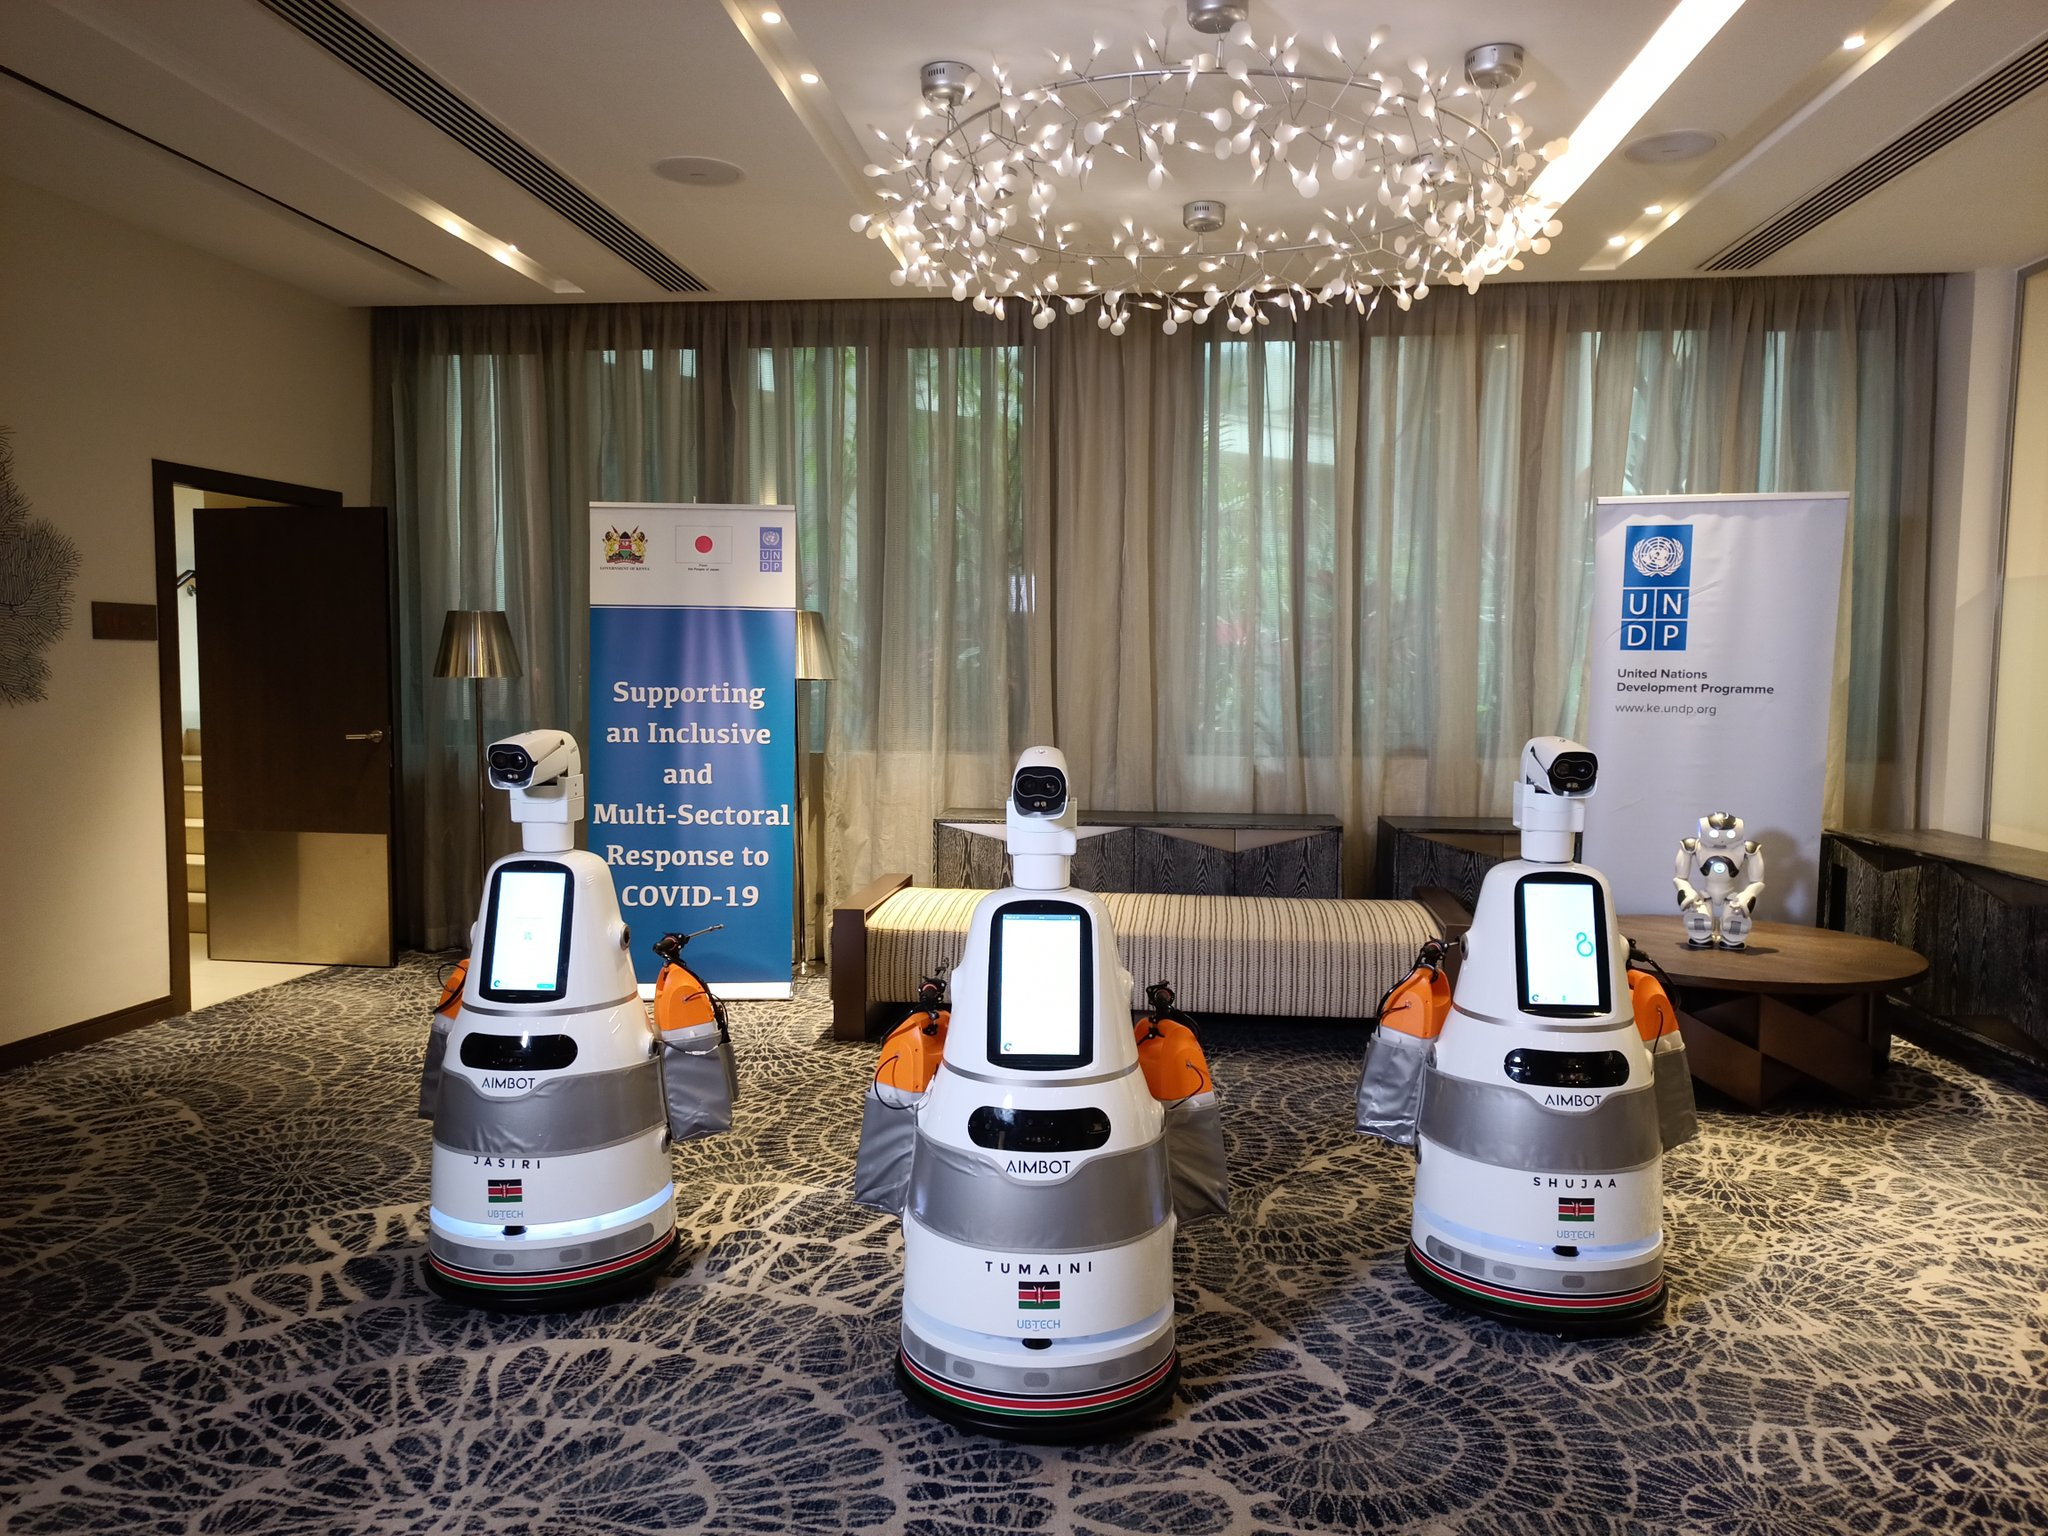 Three smart robots deployed to aid in the fight against the Covid-19 pandemic in Kenya on January 21, 2021.